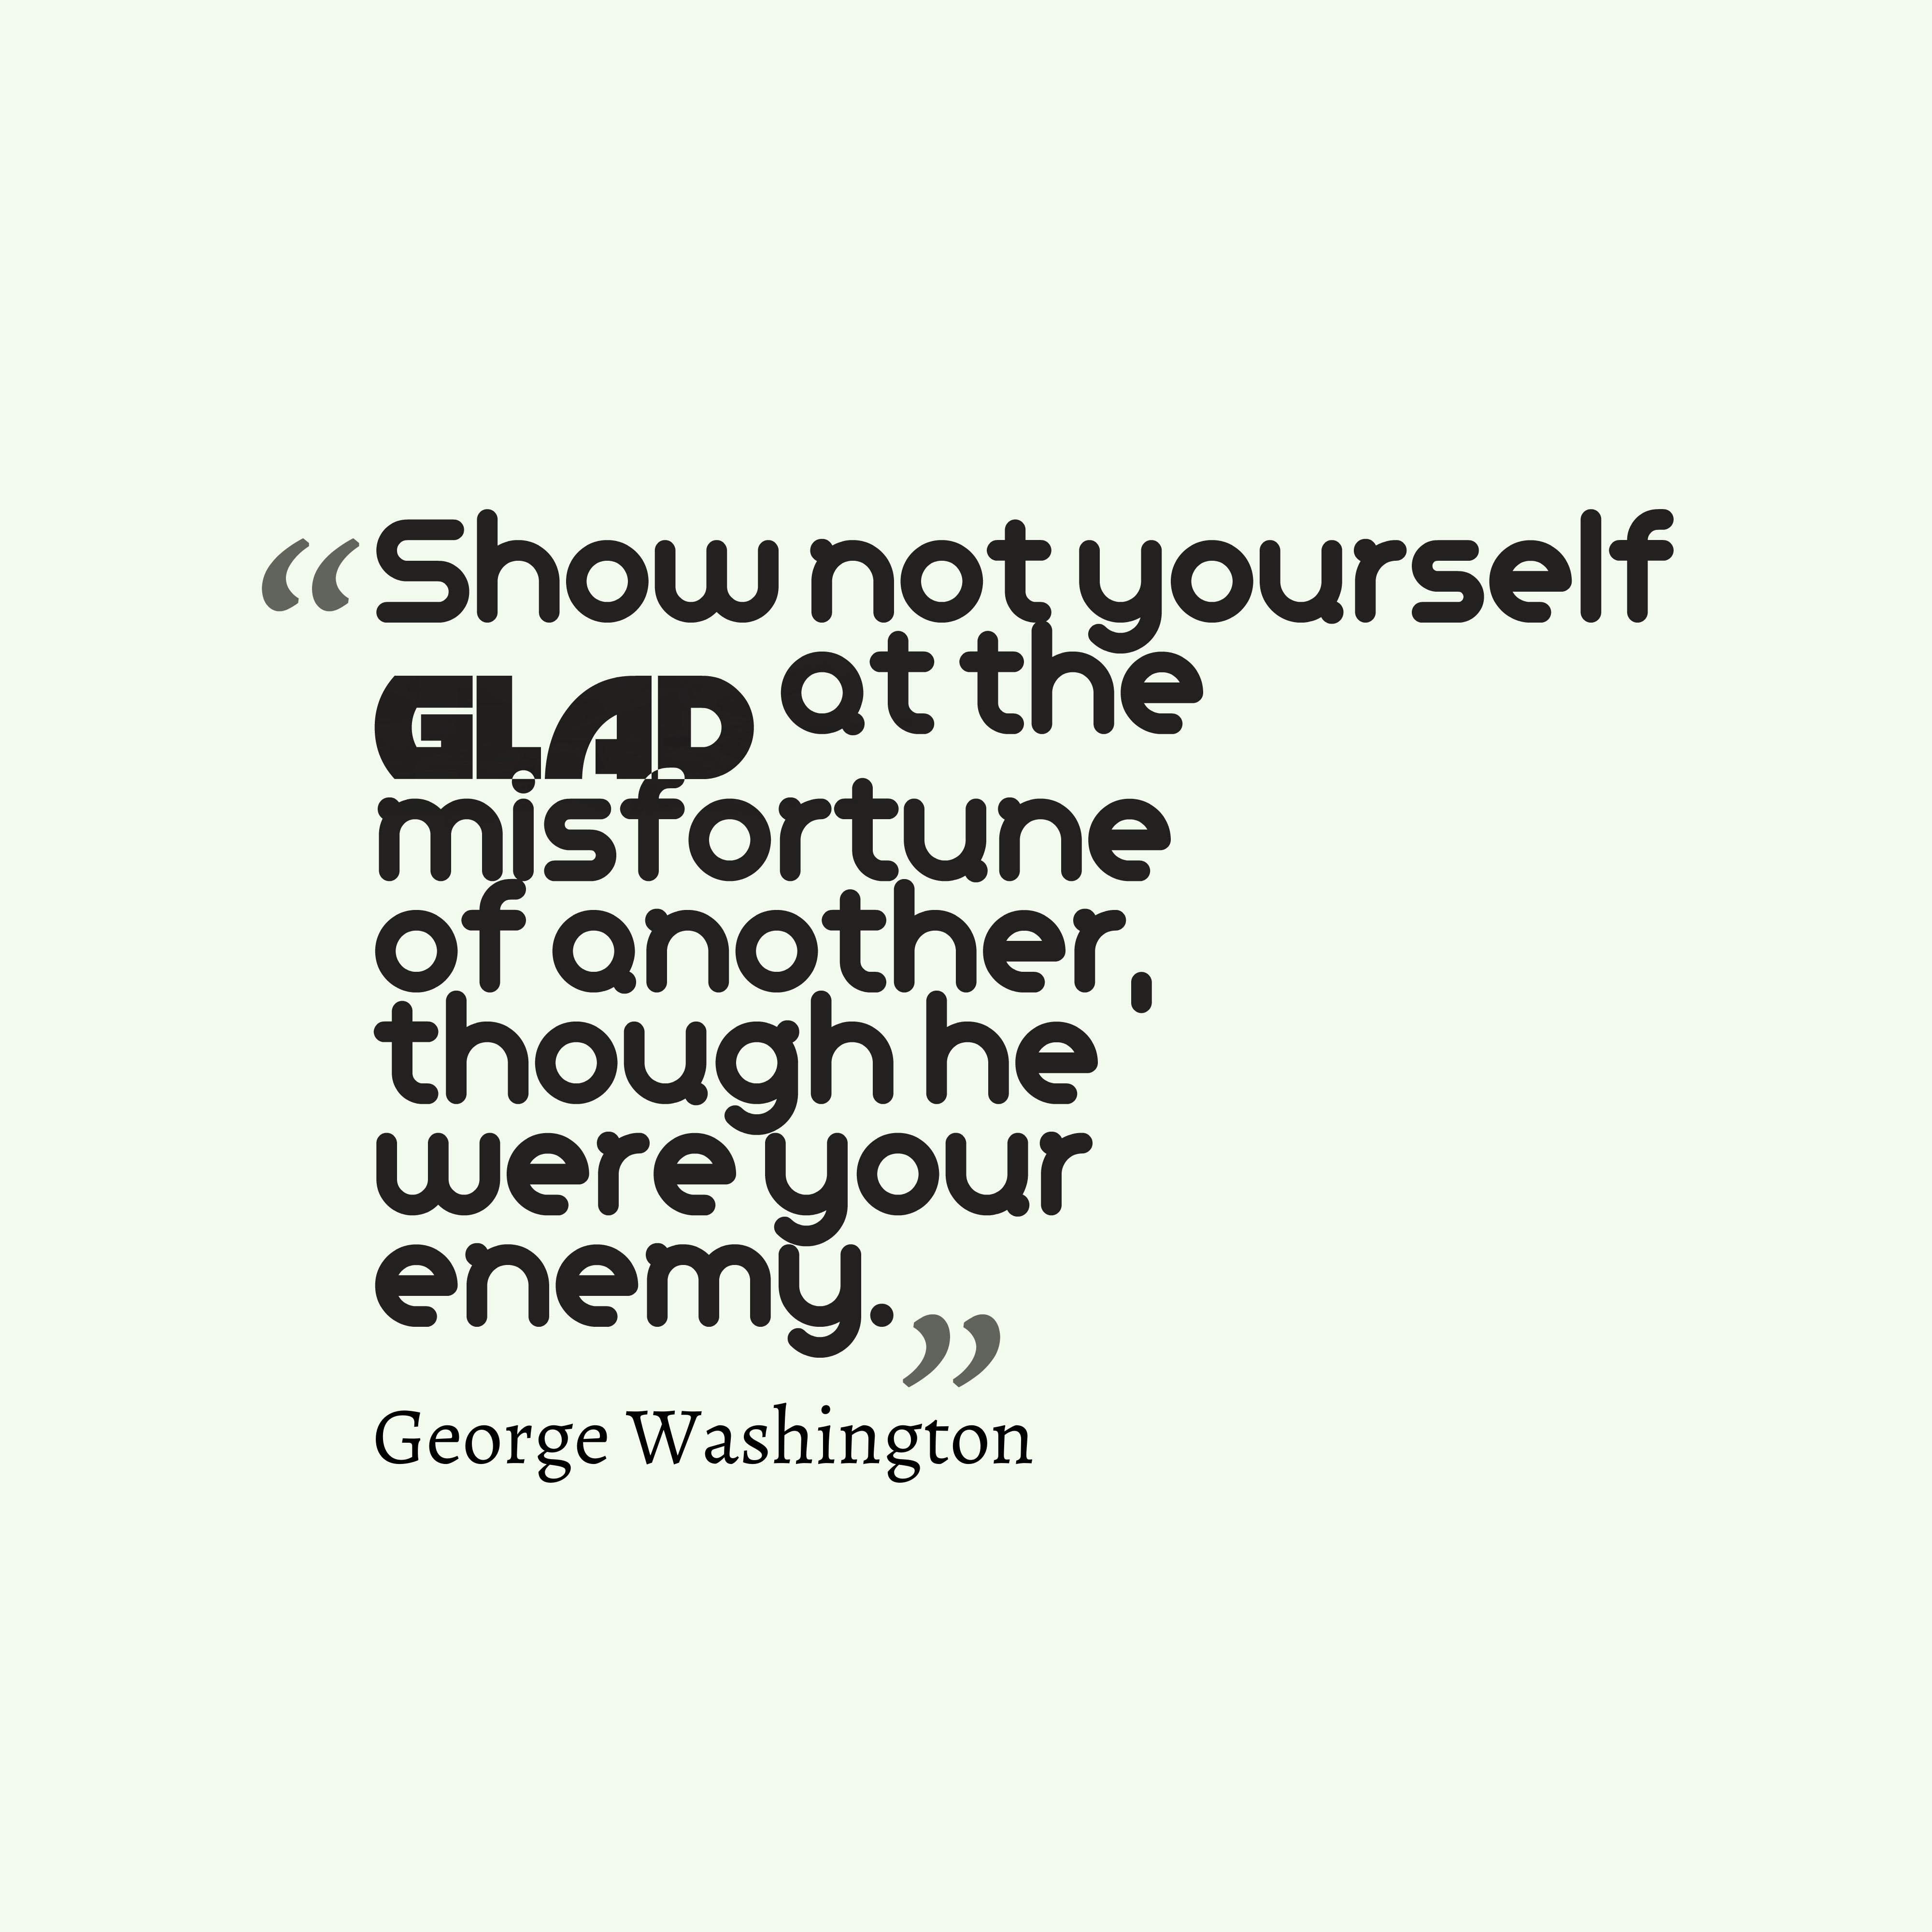 Quotes image of Show not yourself glad at the misfortune of another, though he were your enemy.